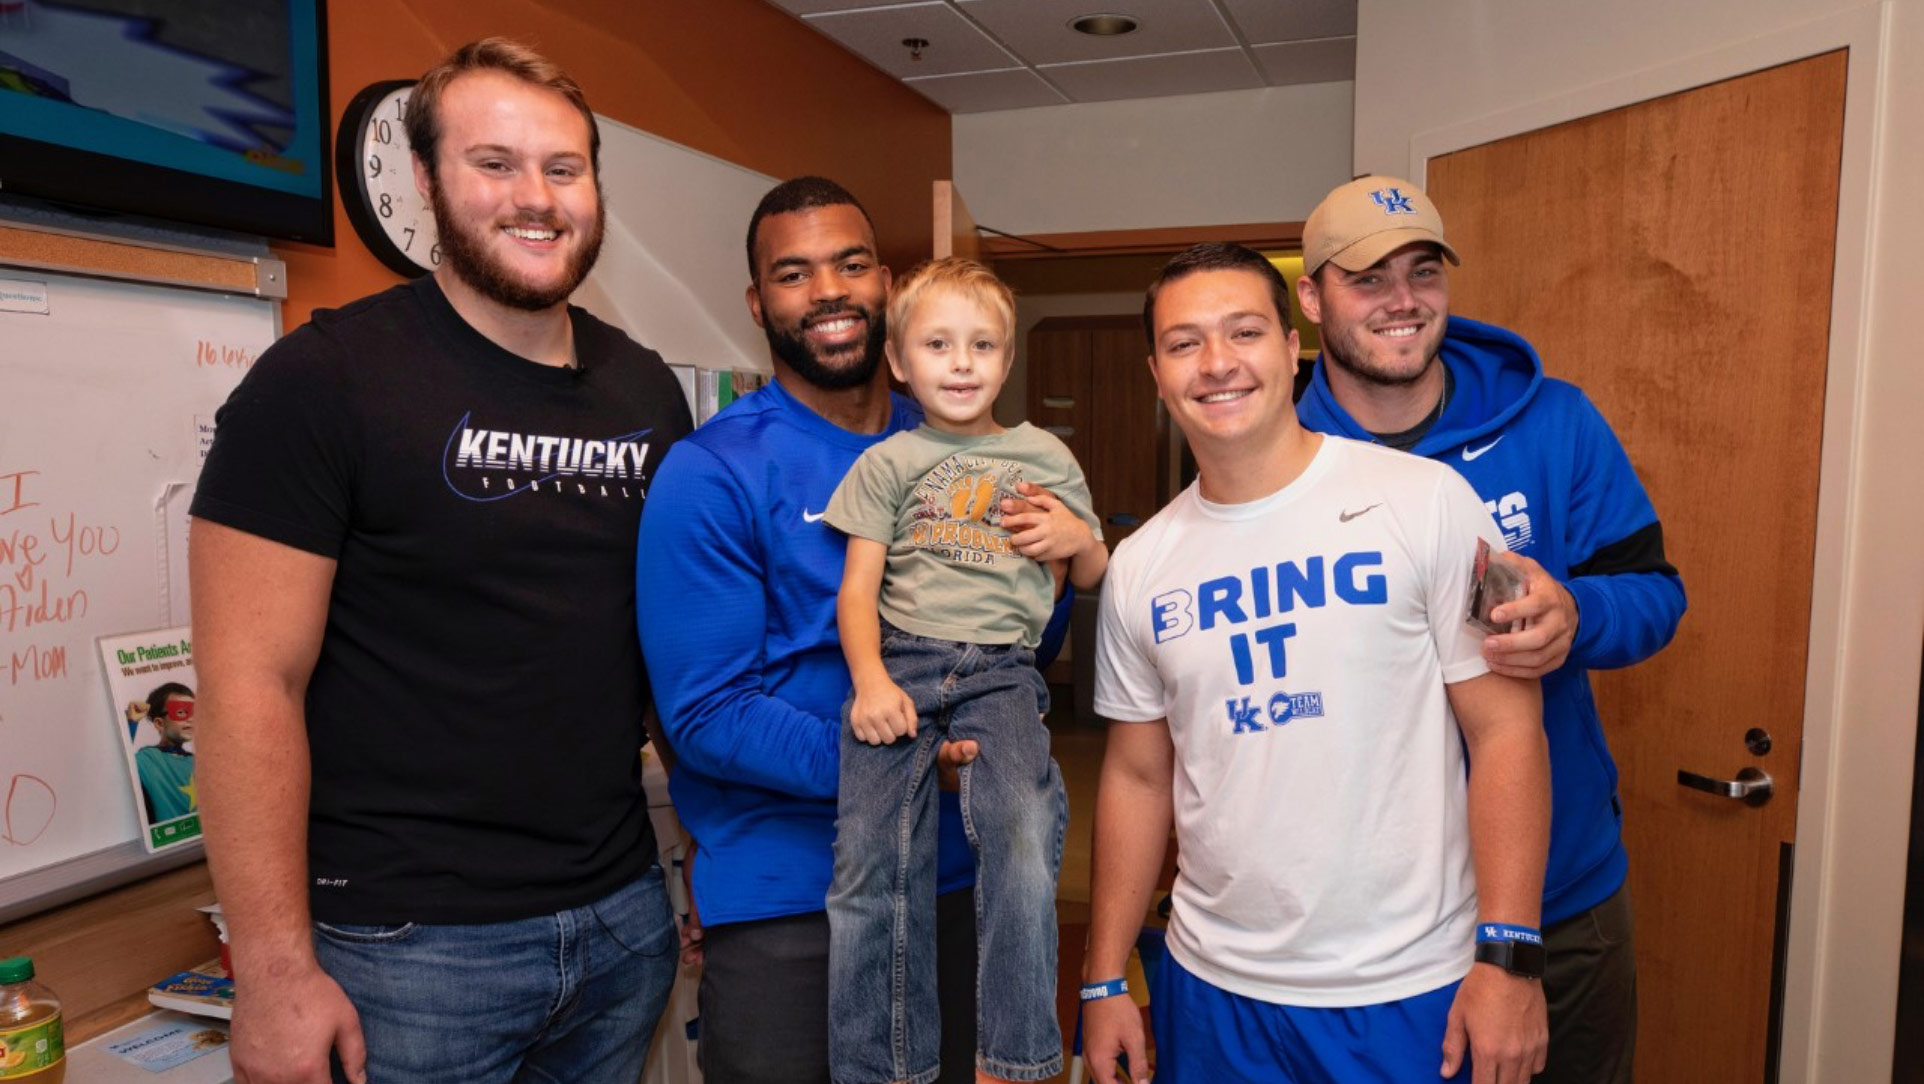 Four football players pose in a hospital room. Courtney Love, a young-looking Black man in a blue shirt, holds a young boy who is a patient at Kentucky Children's Hospital.